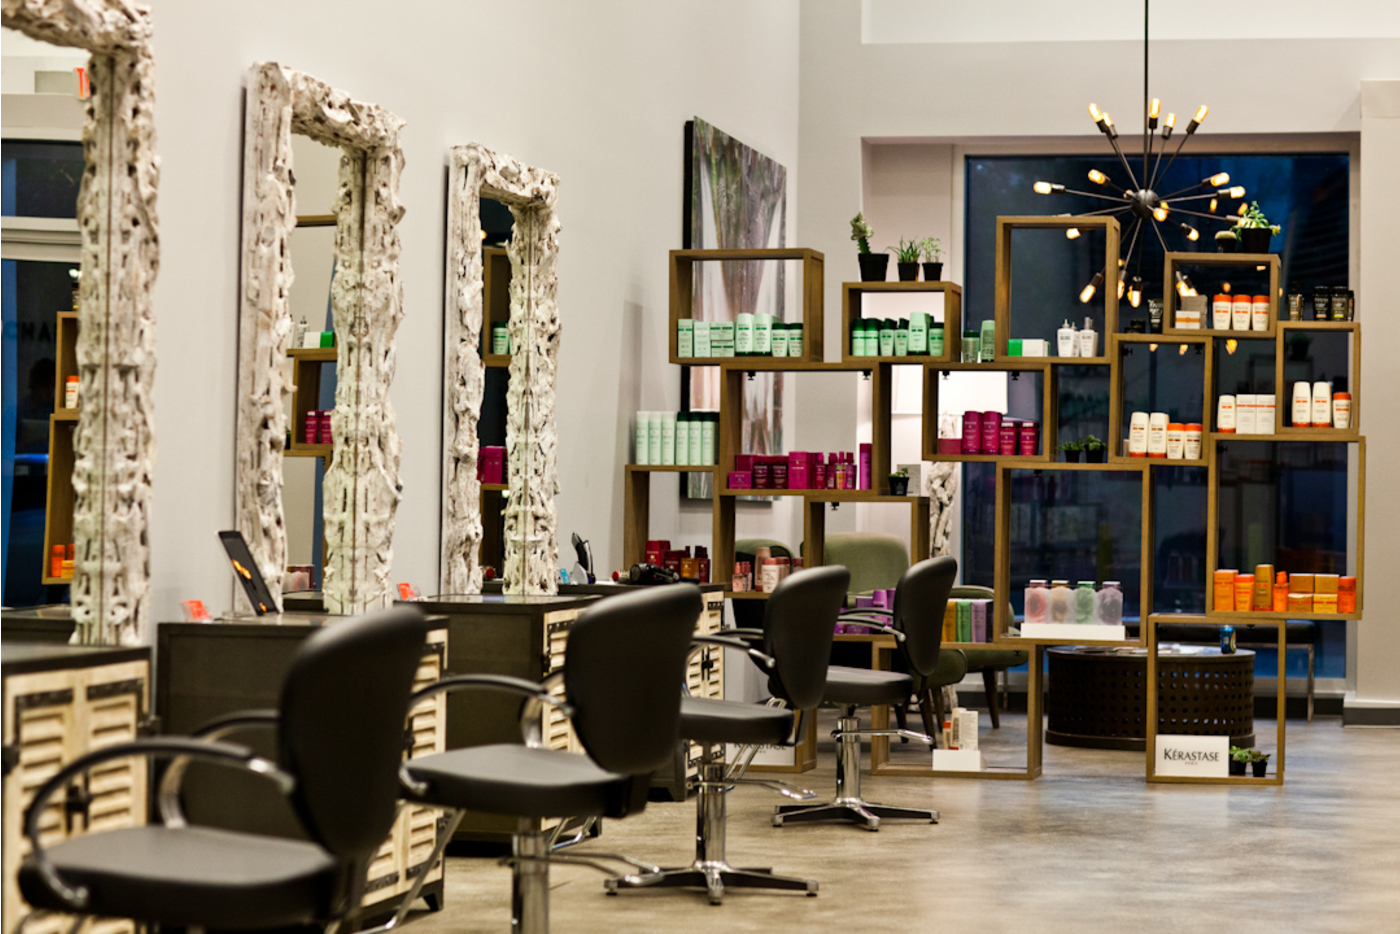 Stylist Assistant Job At Chad Rookstool Salon In Dallas TX